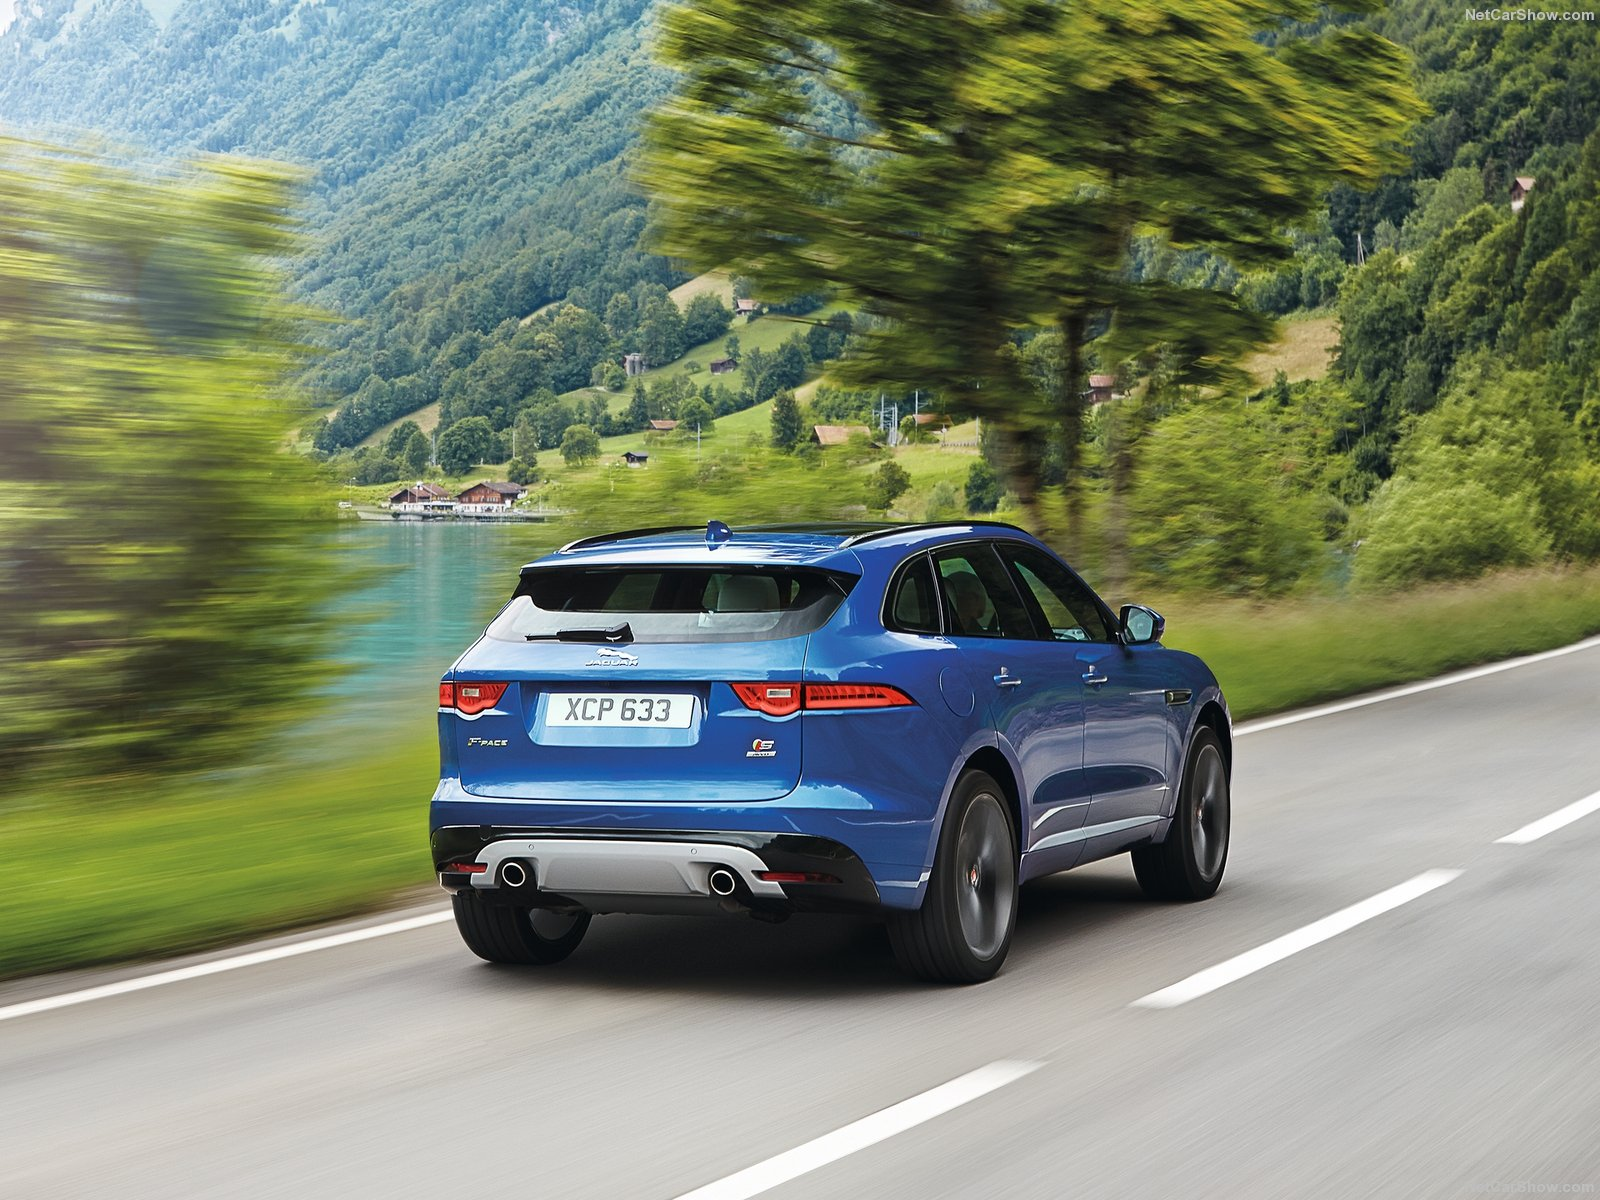 Jaguar F Pace Picture 150053 Photo Gallery 2016 Xq Suv Crossover Pic Link Https Mk25 Pic150053